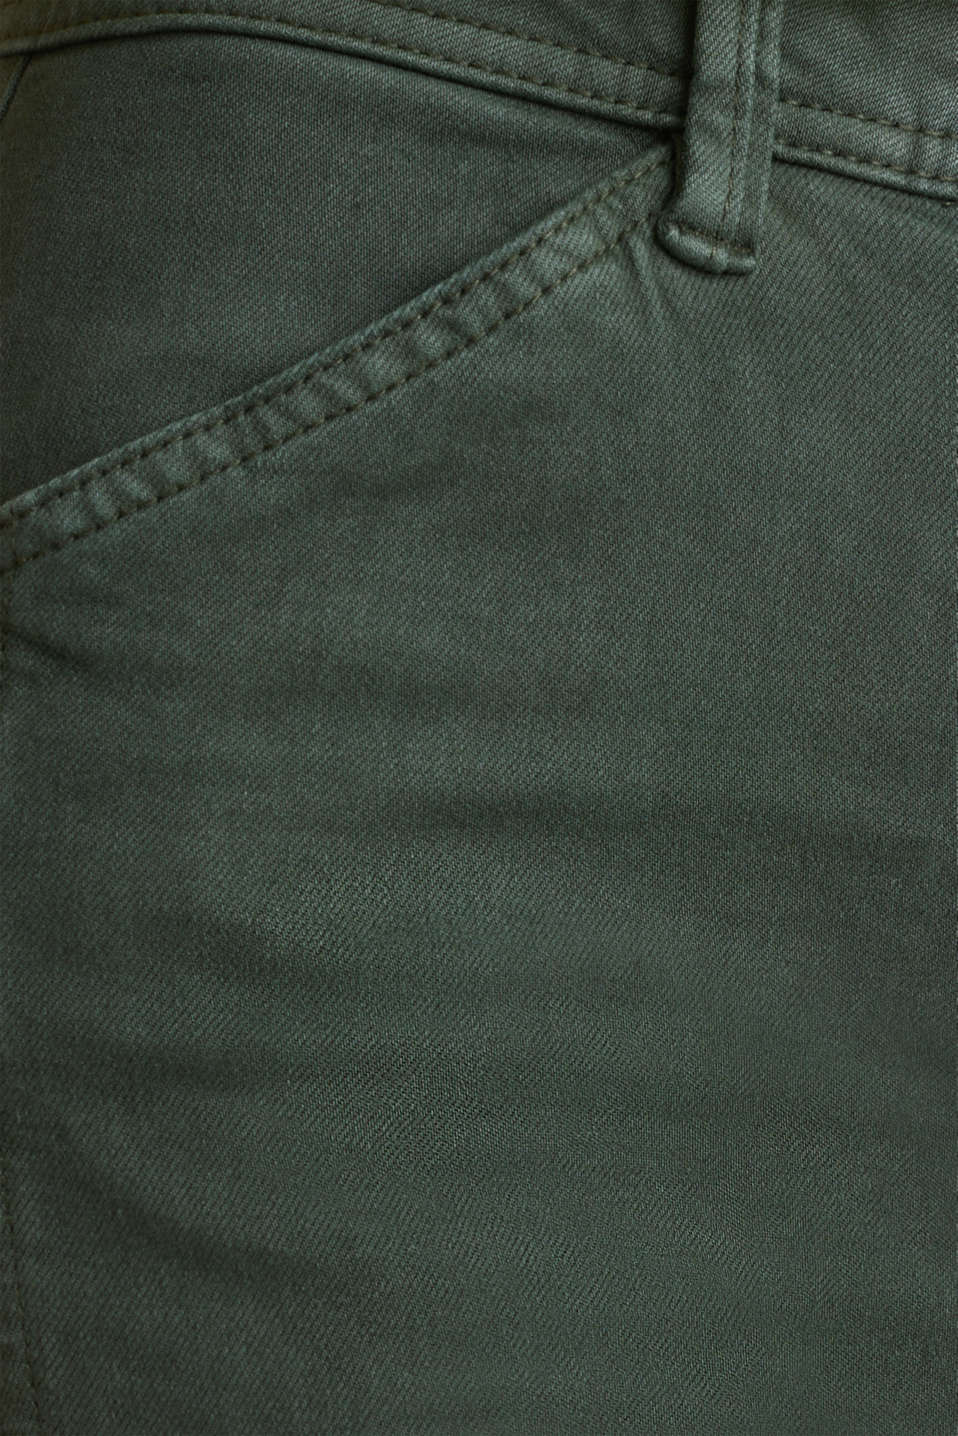 Stretch trousers with cargo pockets, DARK KHAKI, detail image number 4